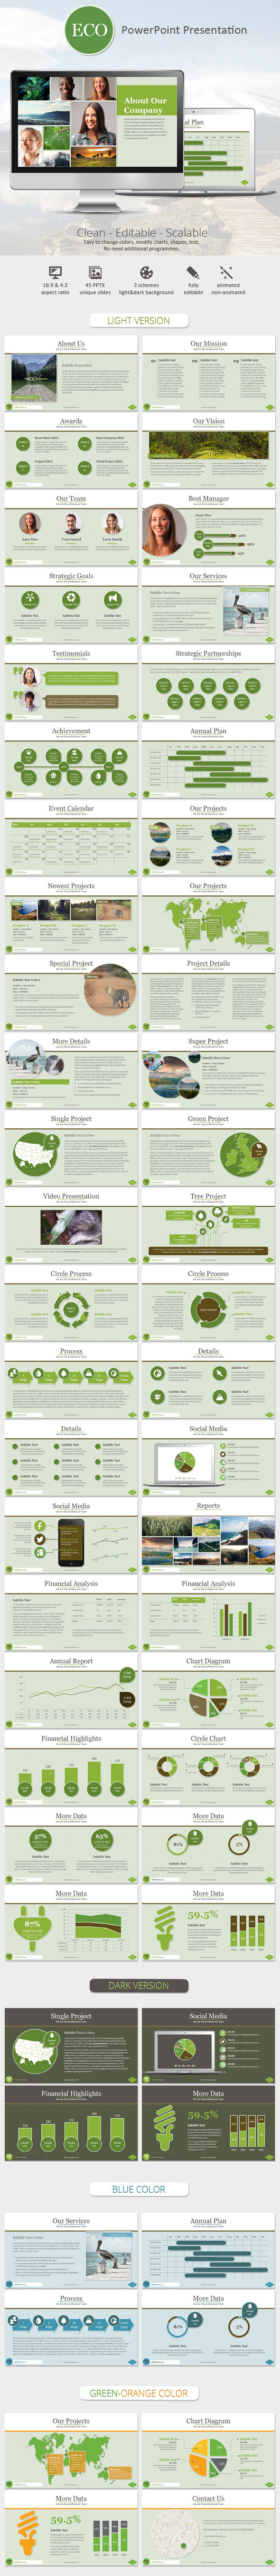 Eco PowerPoint Presentation Template